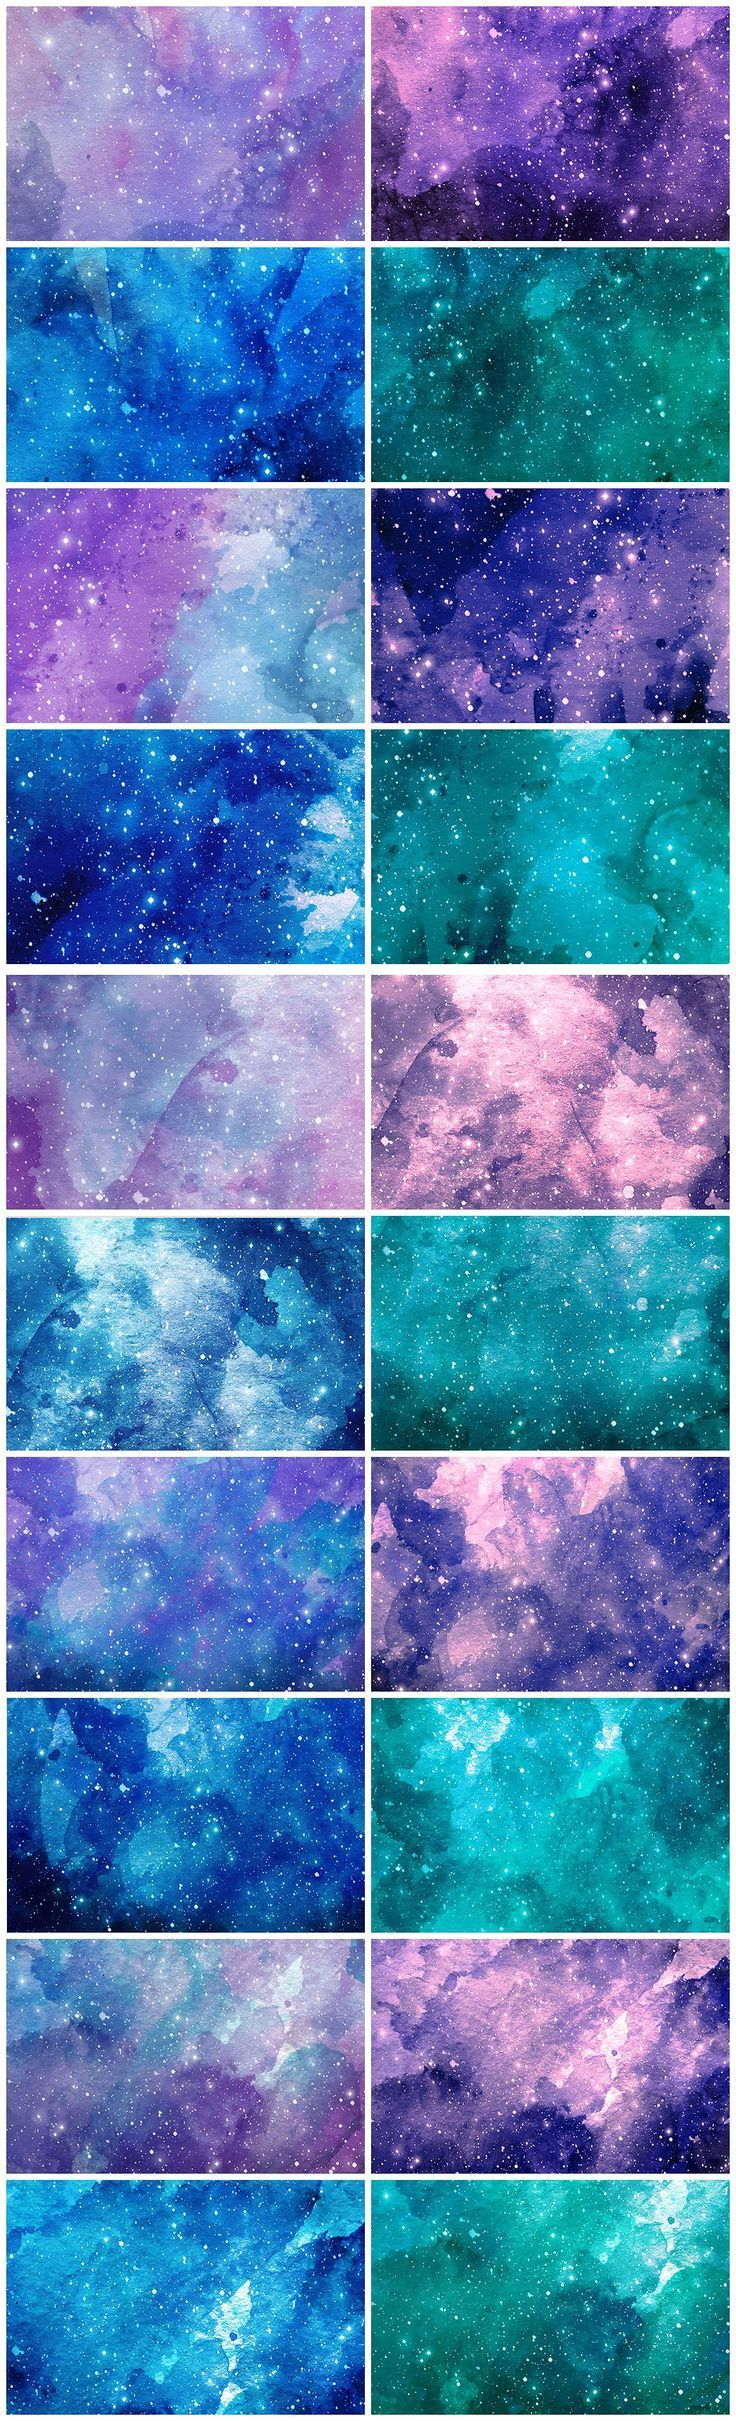 20 Watercolor Space Backgrounds by Vik_Tory_Design on @creativemarket